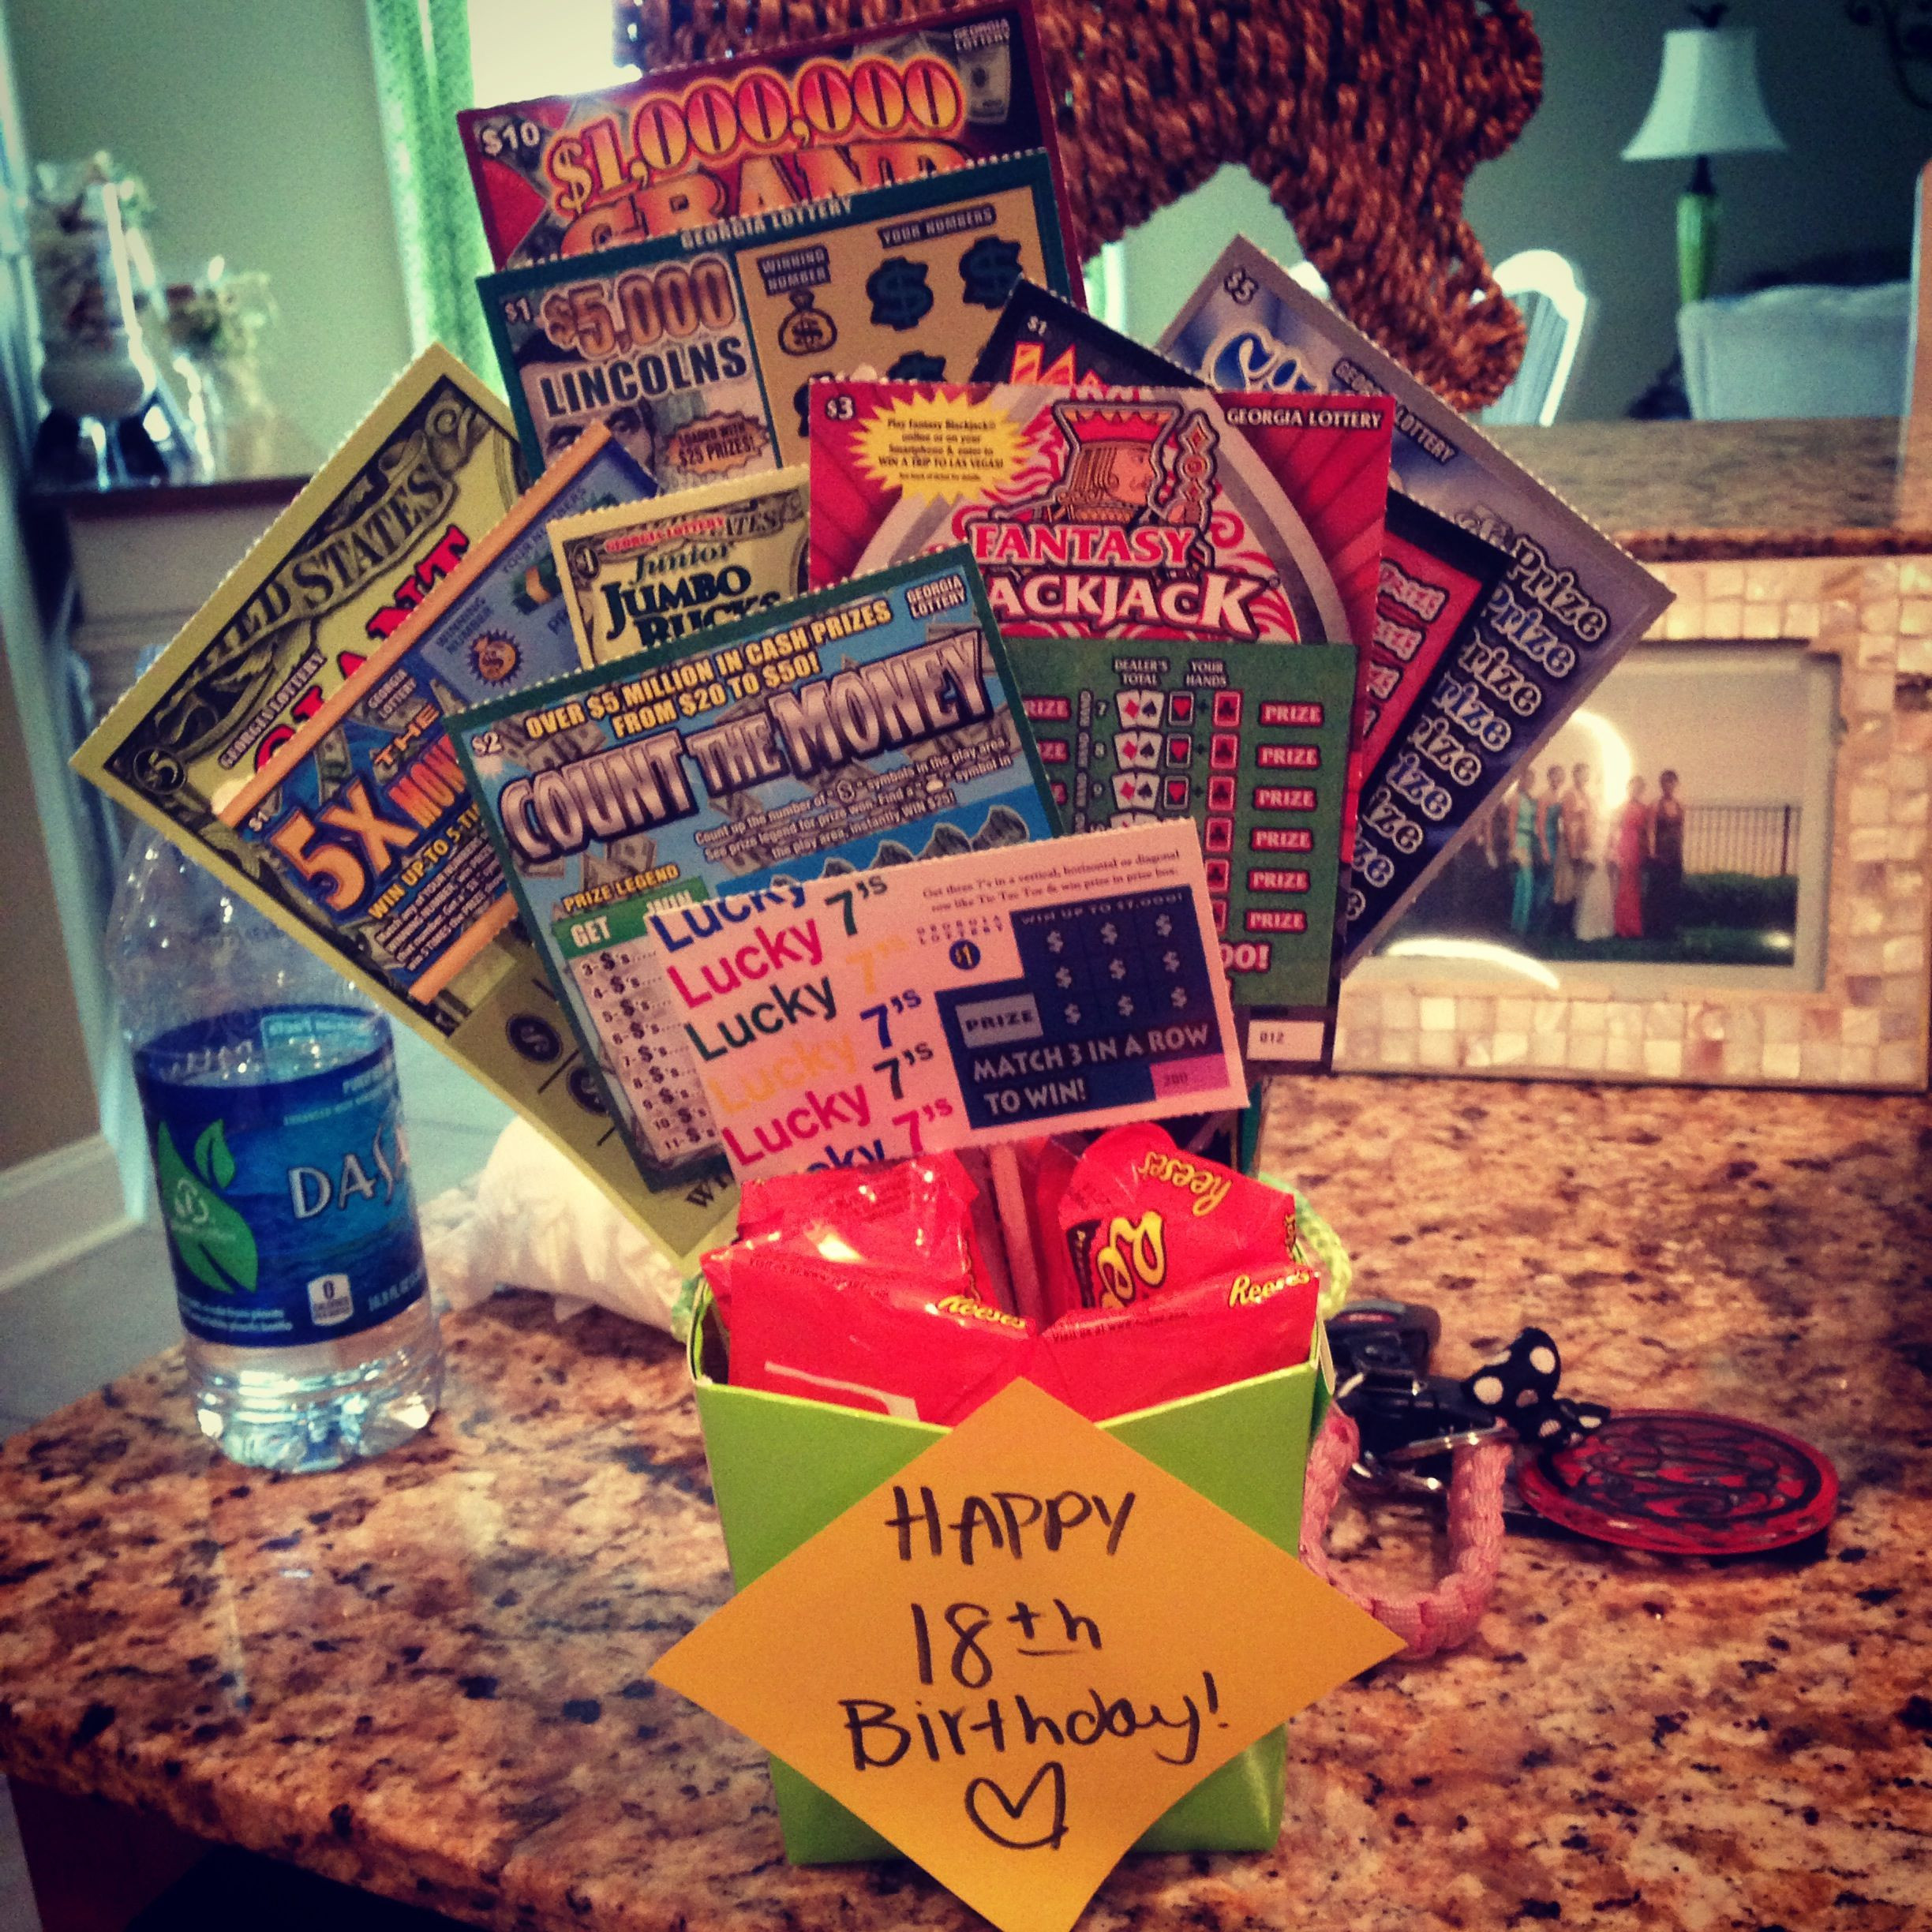 Best ideas about 18 Birthday Present Ideas . Save or Pin 18th birthday t scratchoffs Gifts Now.